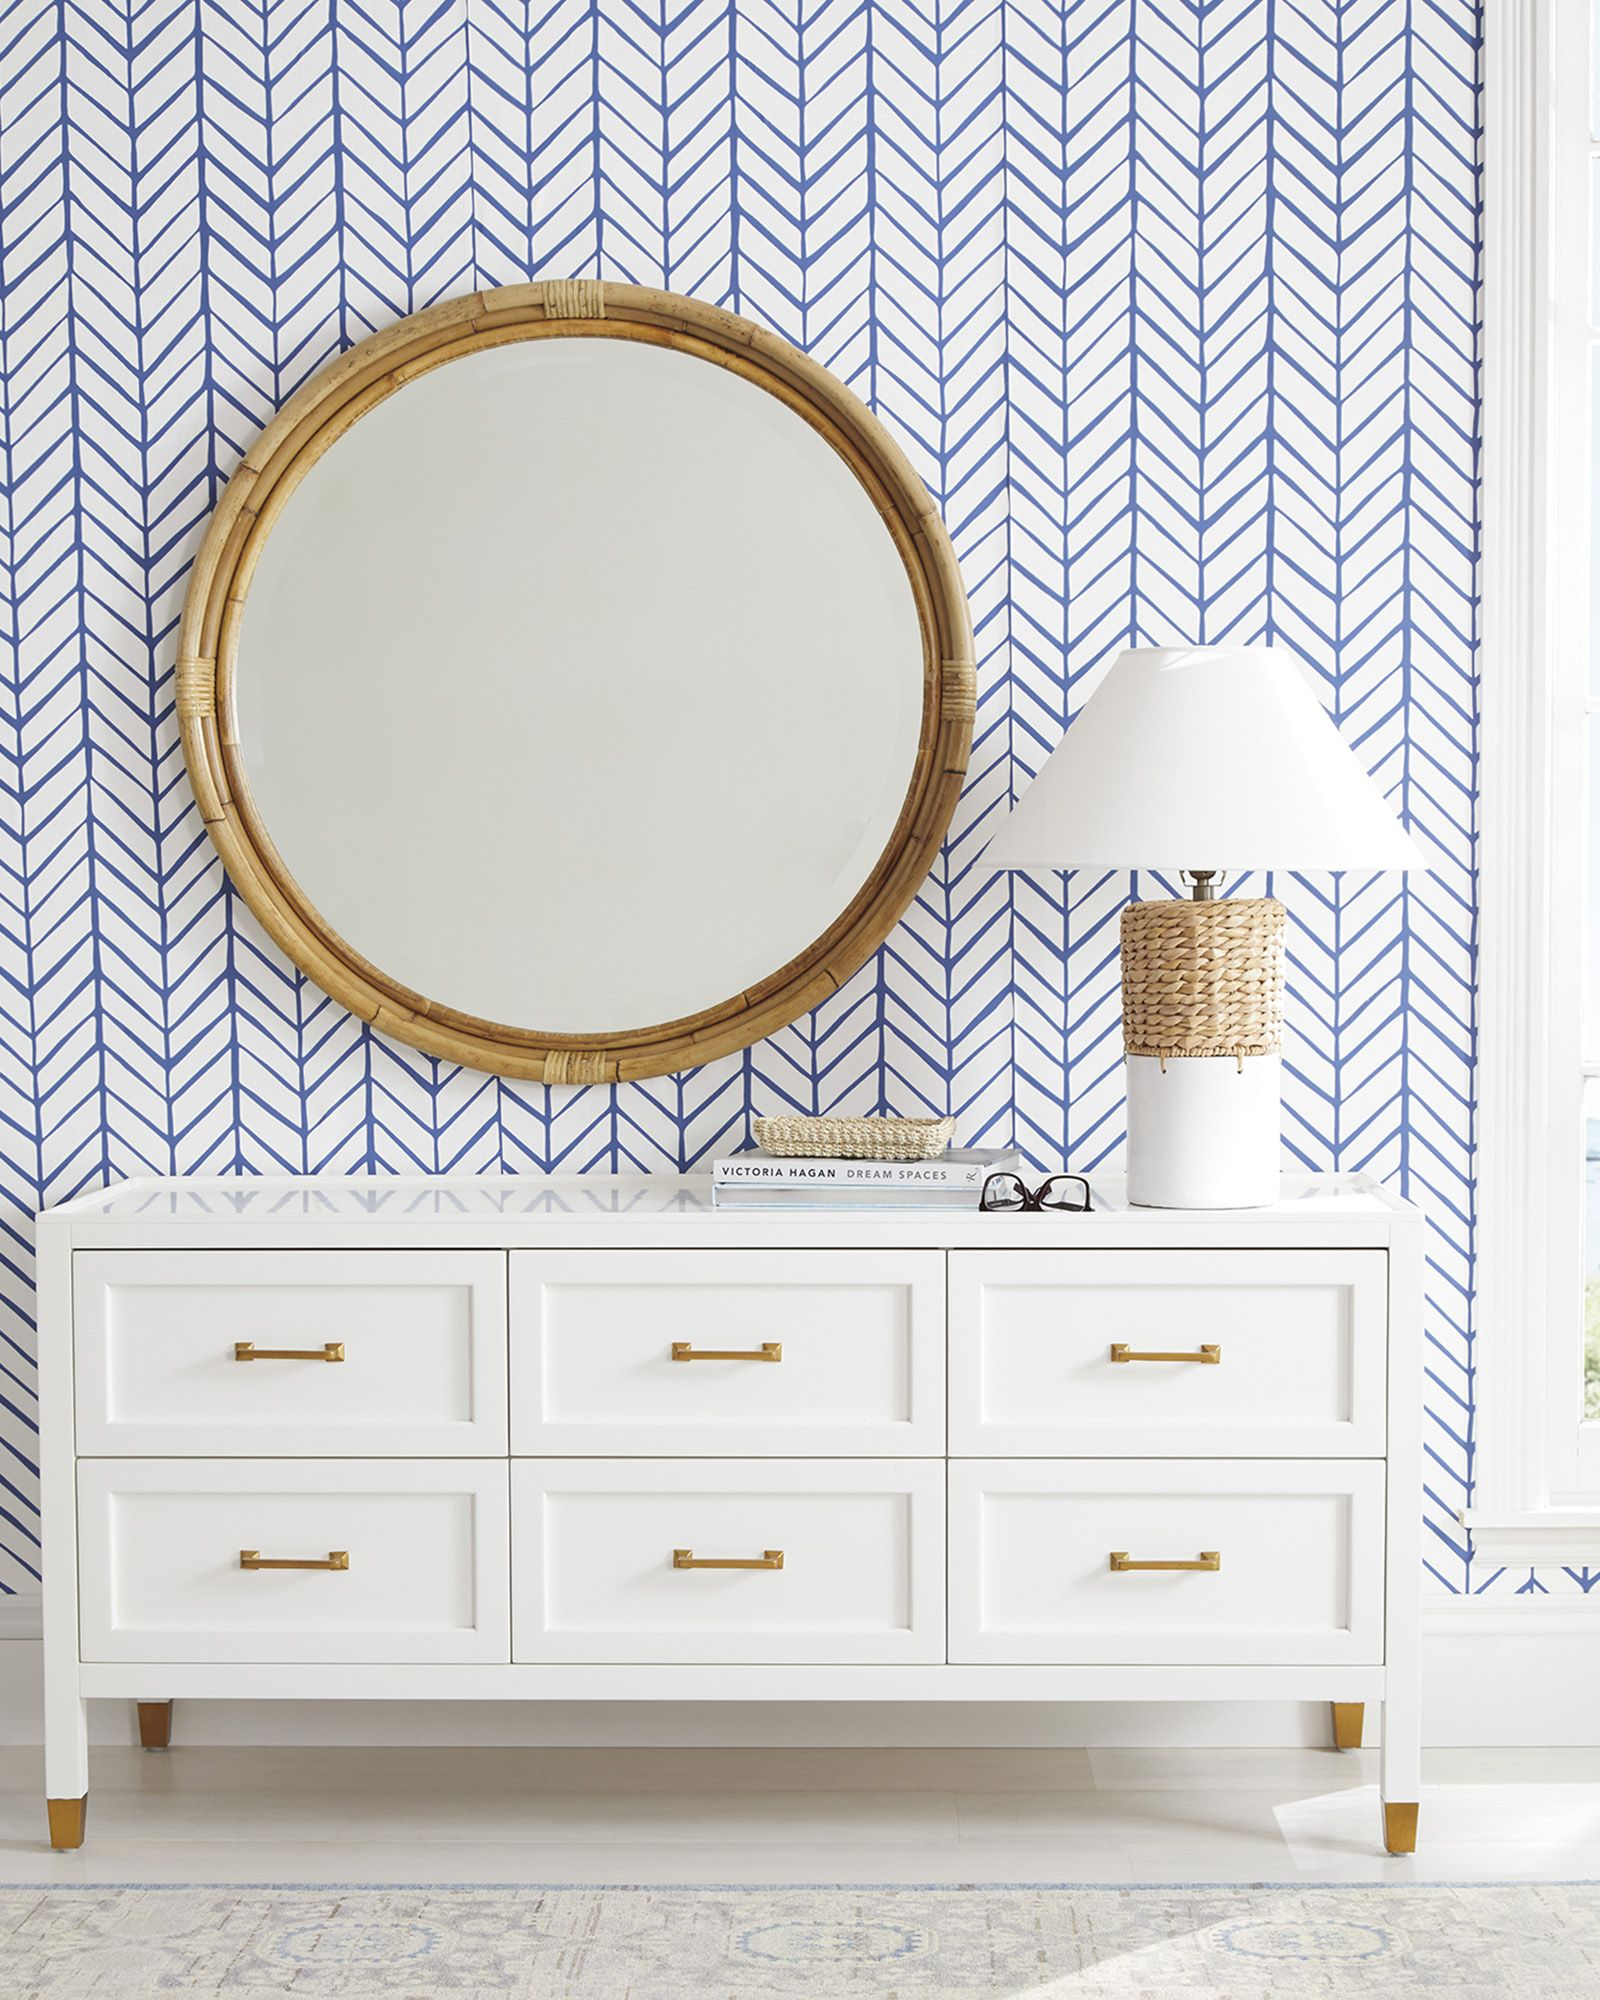 Feather Wallpaper Feather Wallpaper Serena And Lily Wallpaper Laundry Room Wallpaper